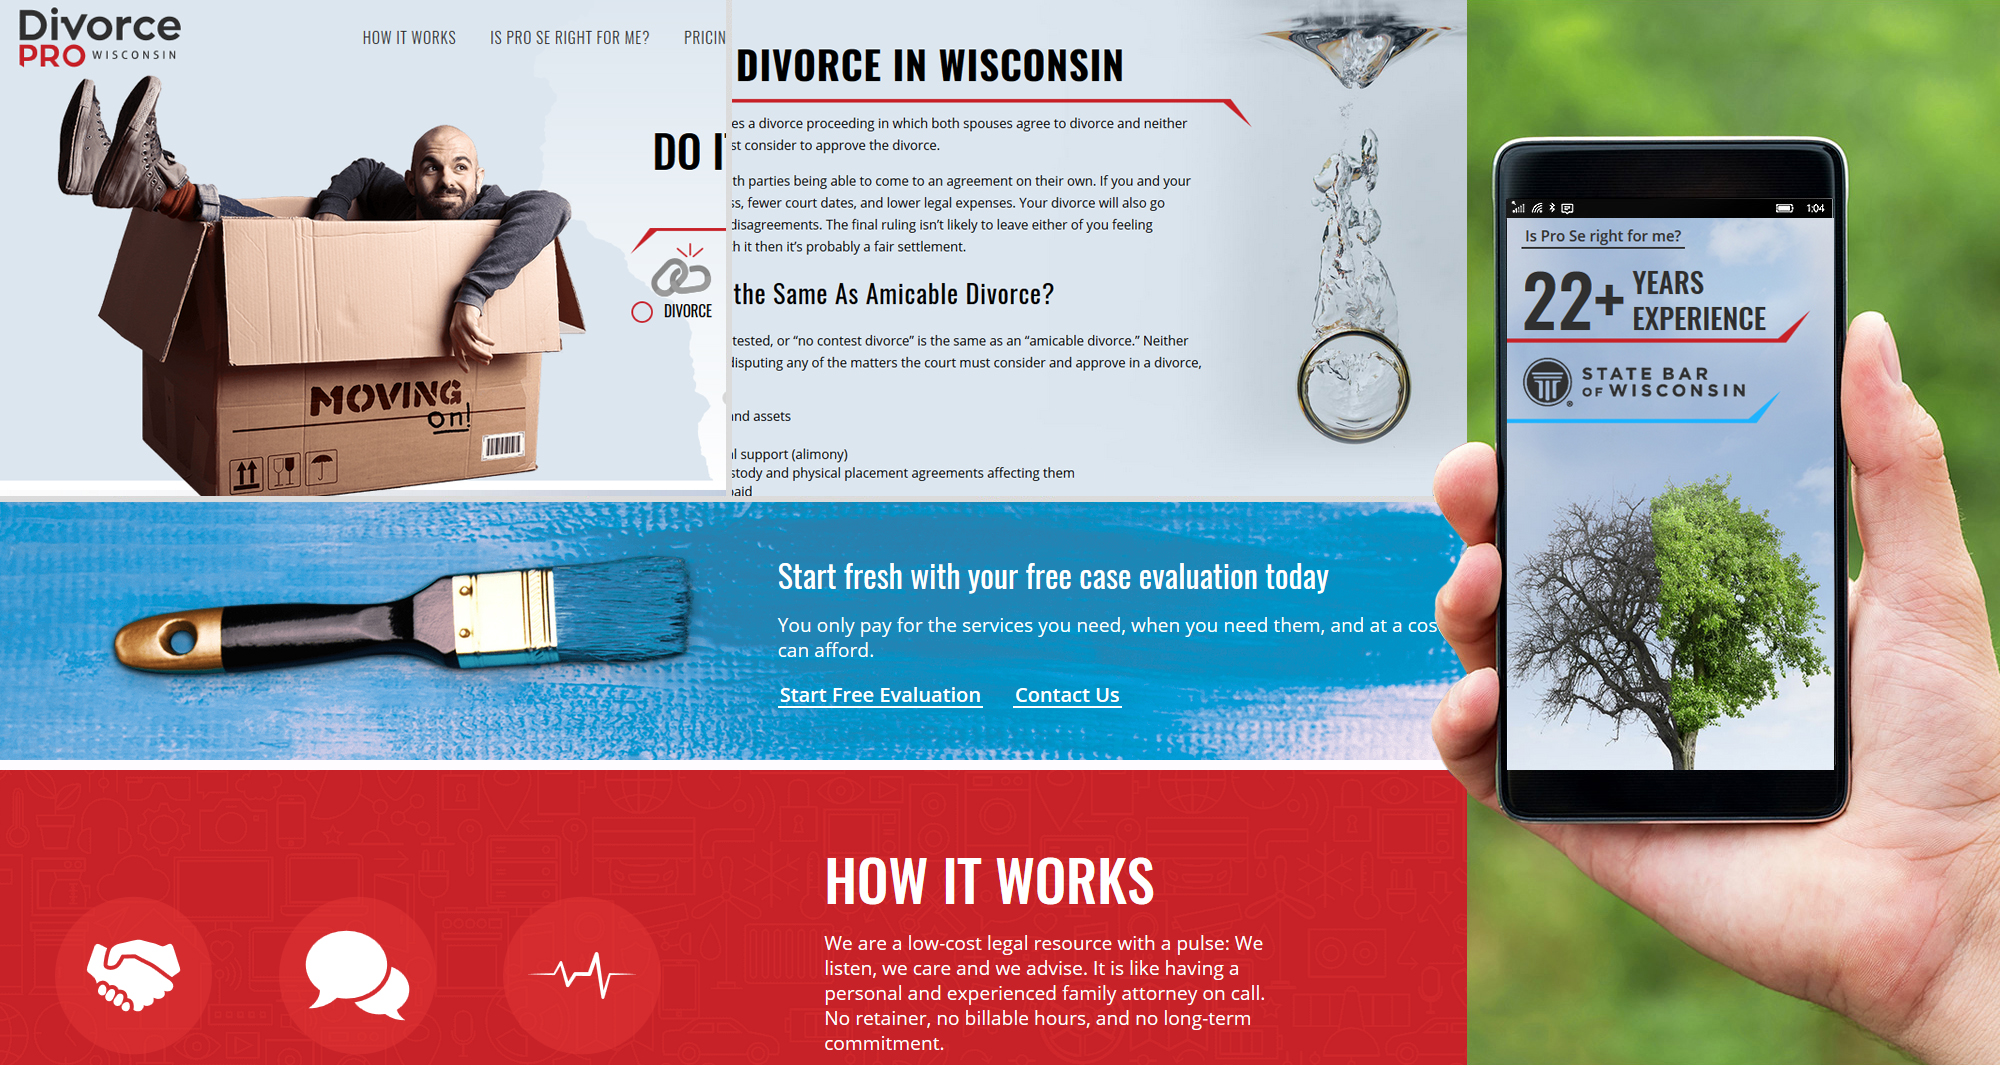 Milwaukee web marketing for Divorce Pro Wisconsin